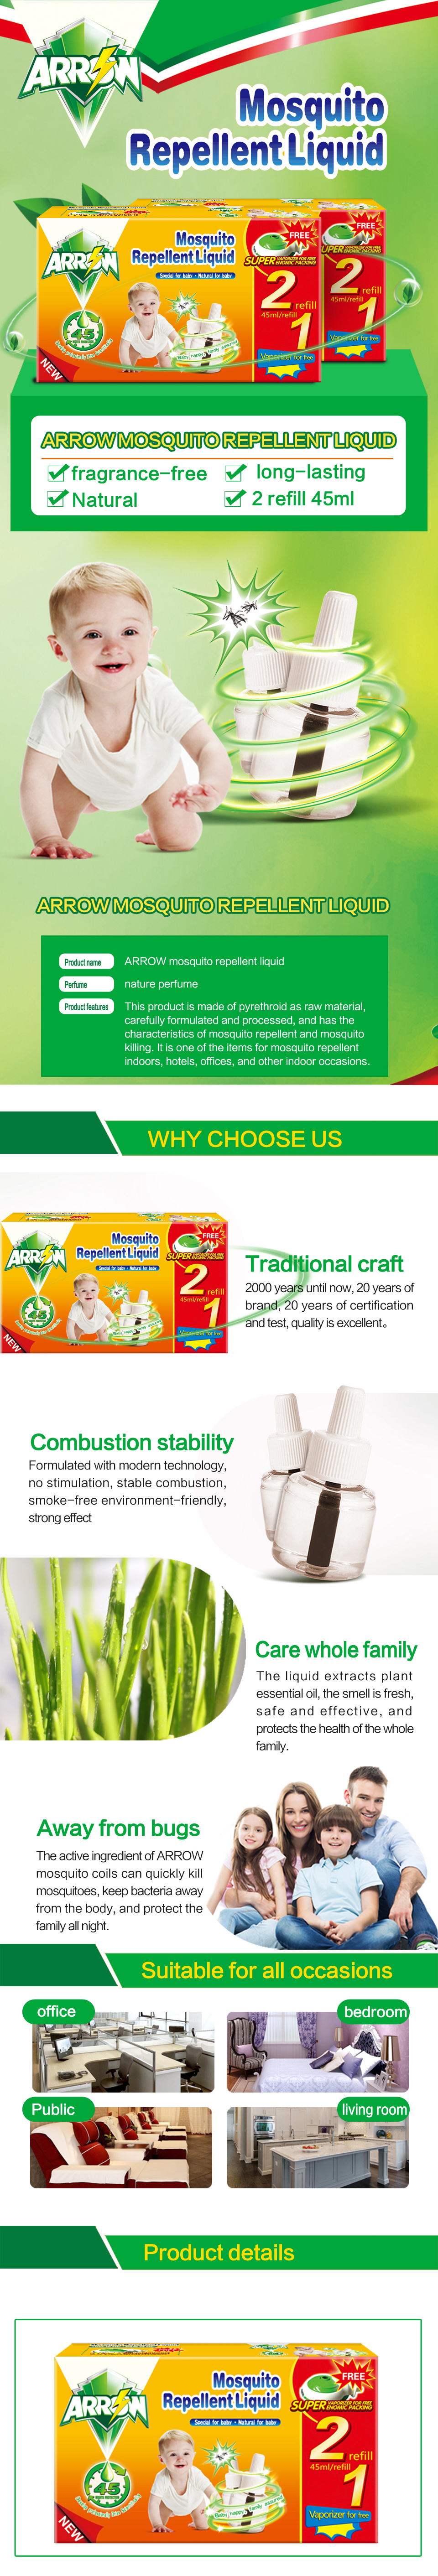 arrow-brand-mosquito-repellent-liquid-for-kids